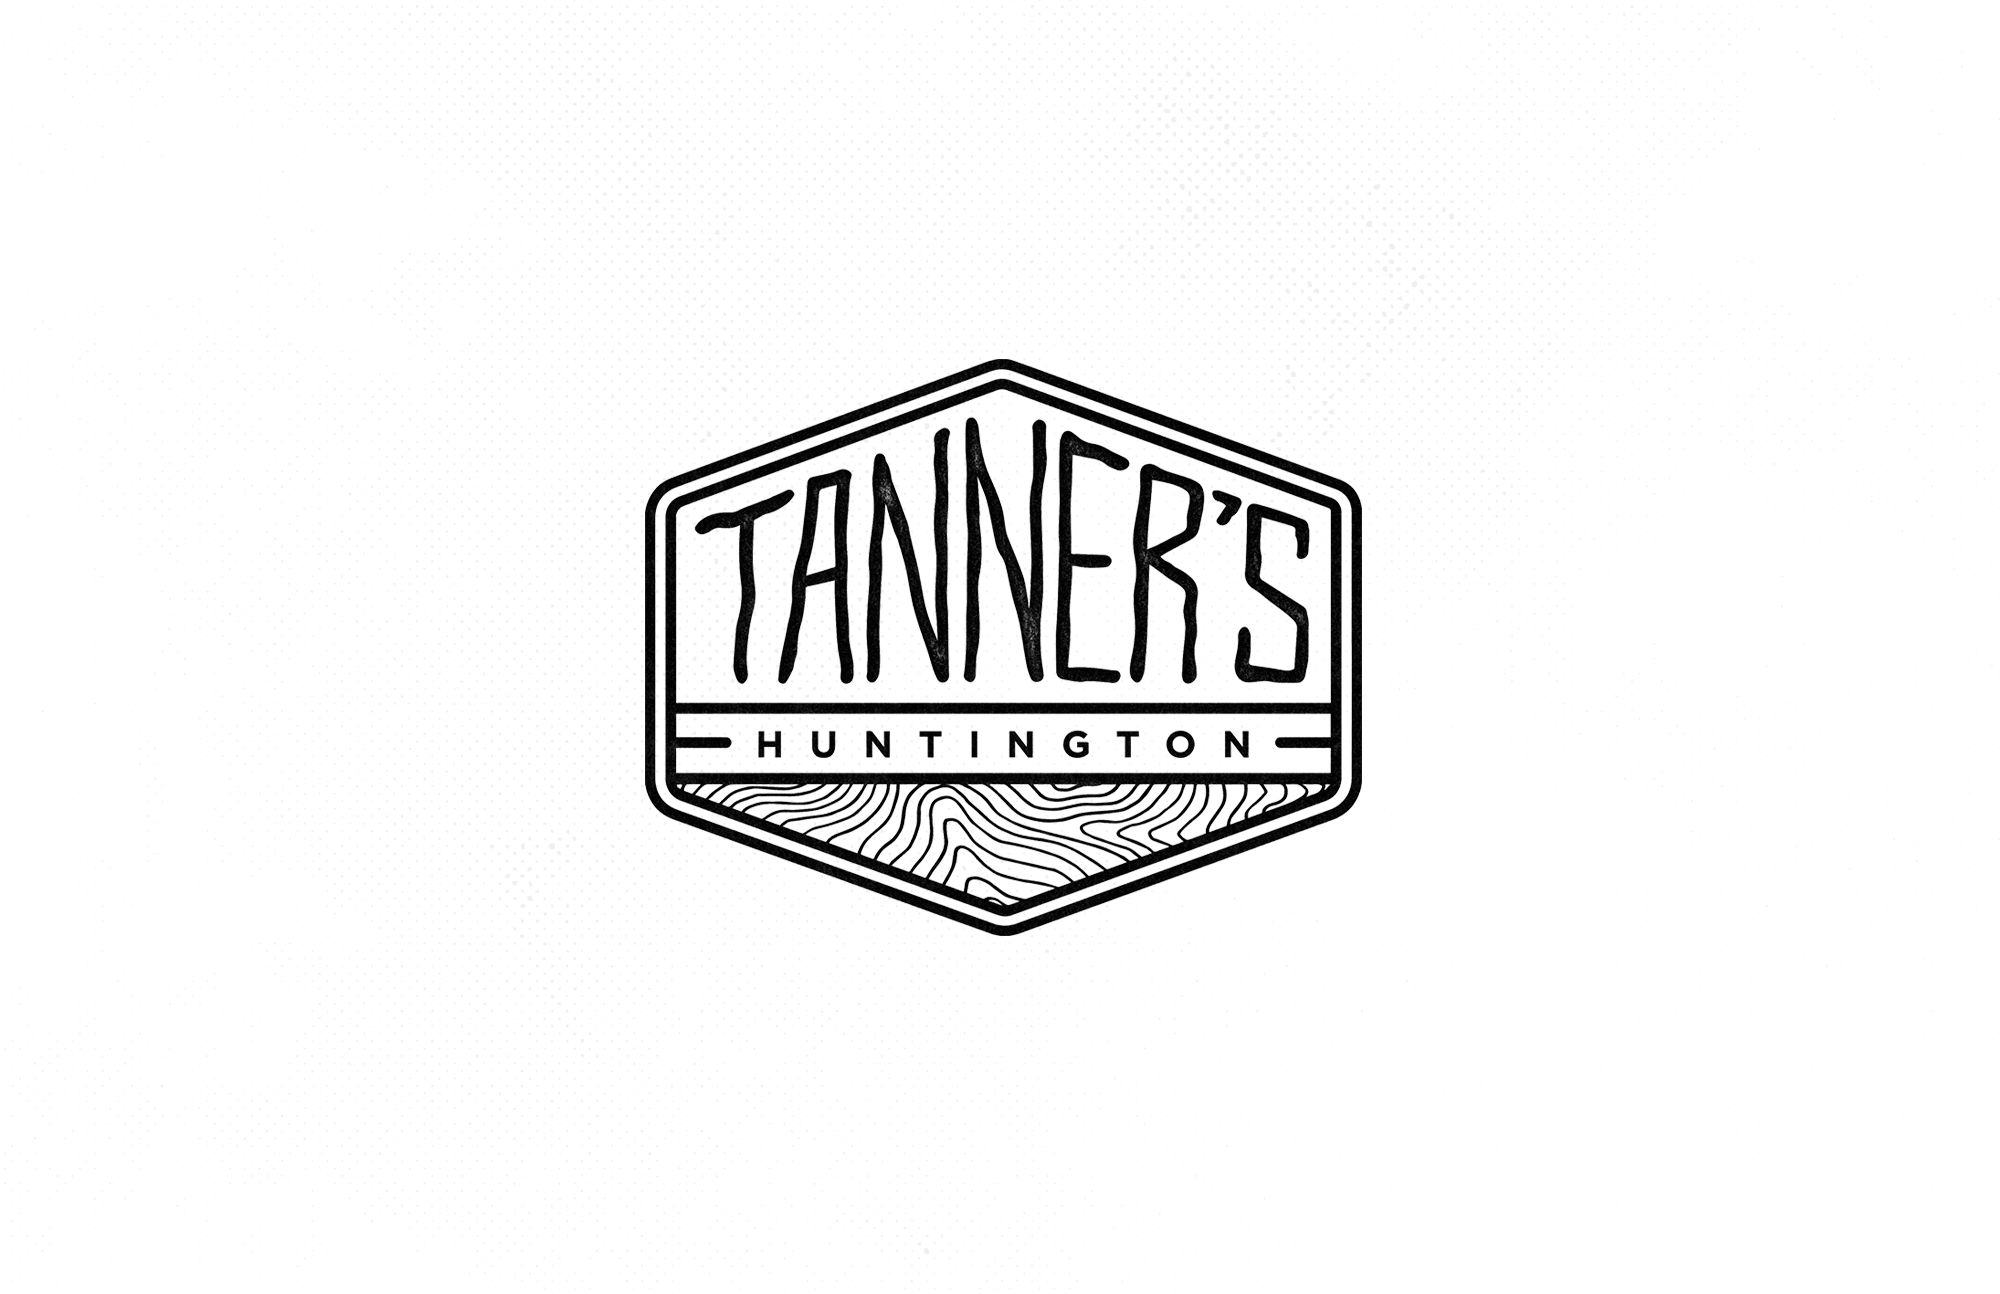 tanners-huntington-beach-3